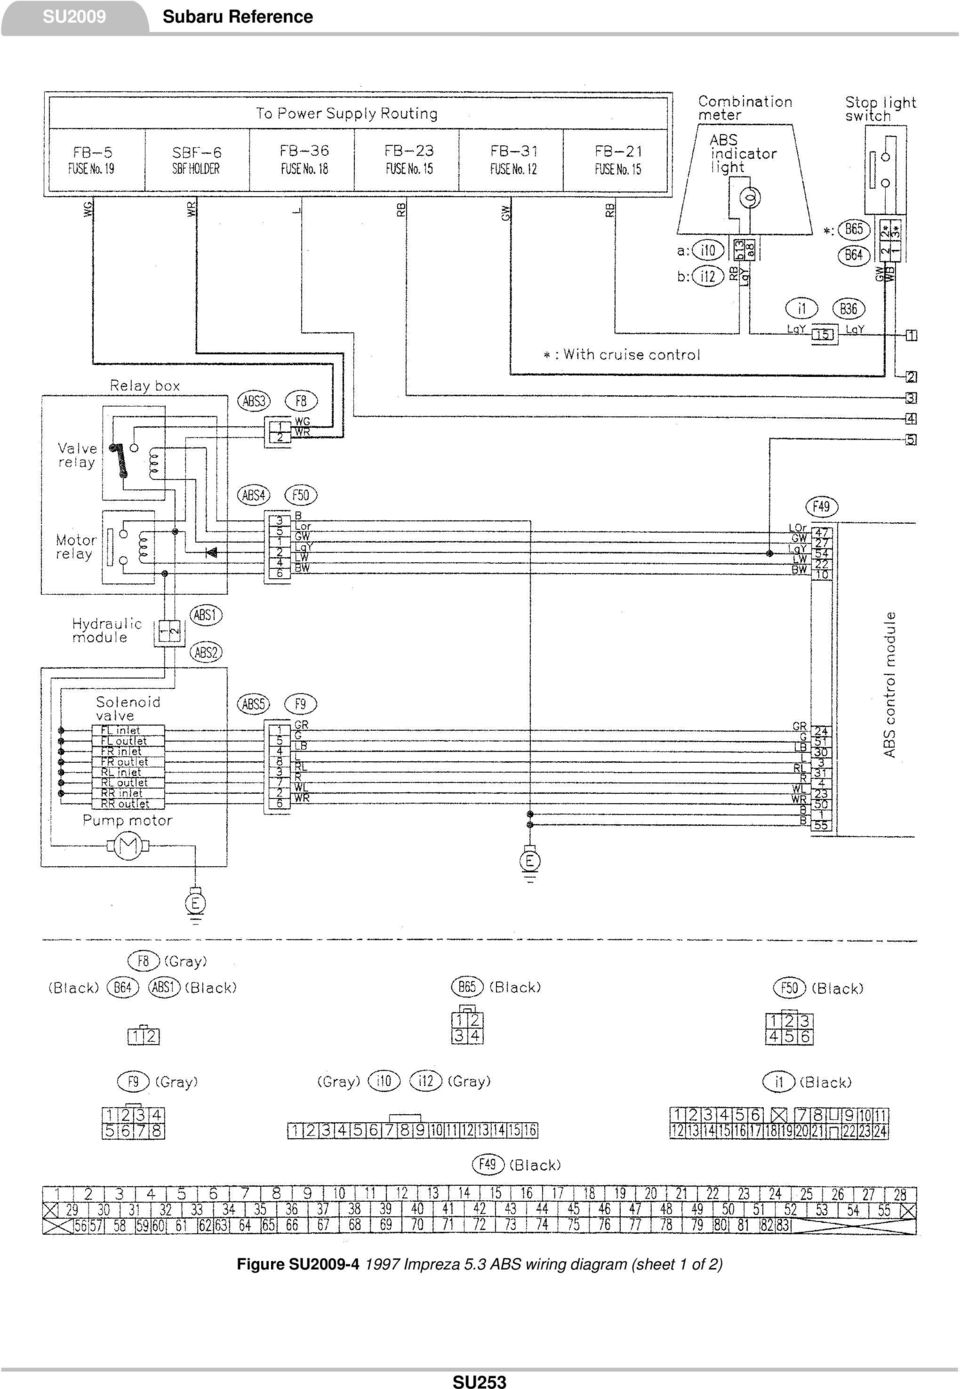 subaru reference. this reference contains the following ... 12 pin relay wiring diagram ab 11 pin relay wiring diagram